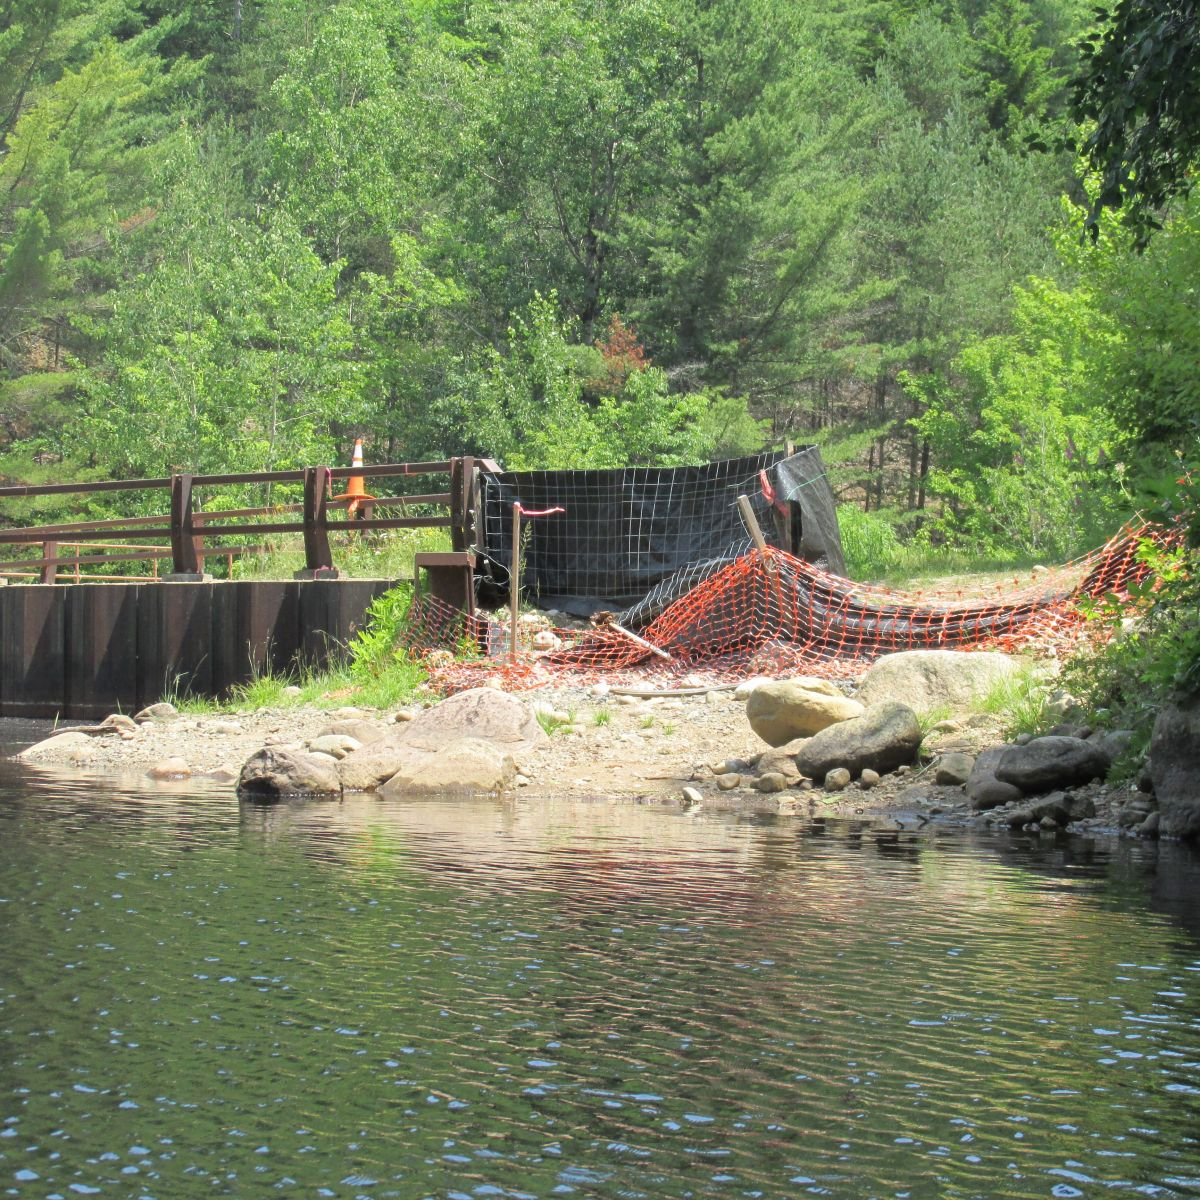 Previous put-in was closed off due to renovations on the Upper Dam